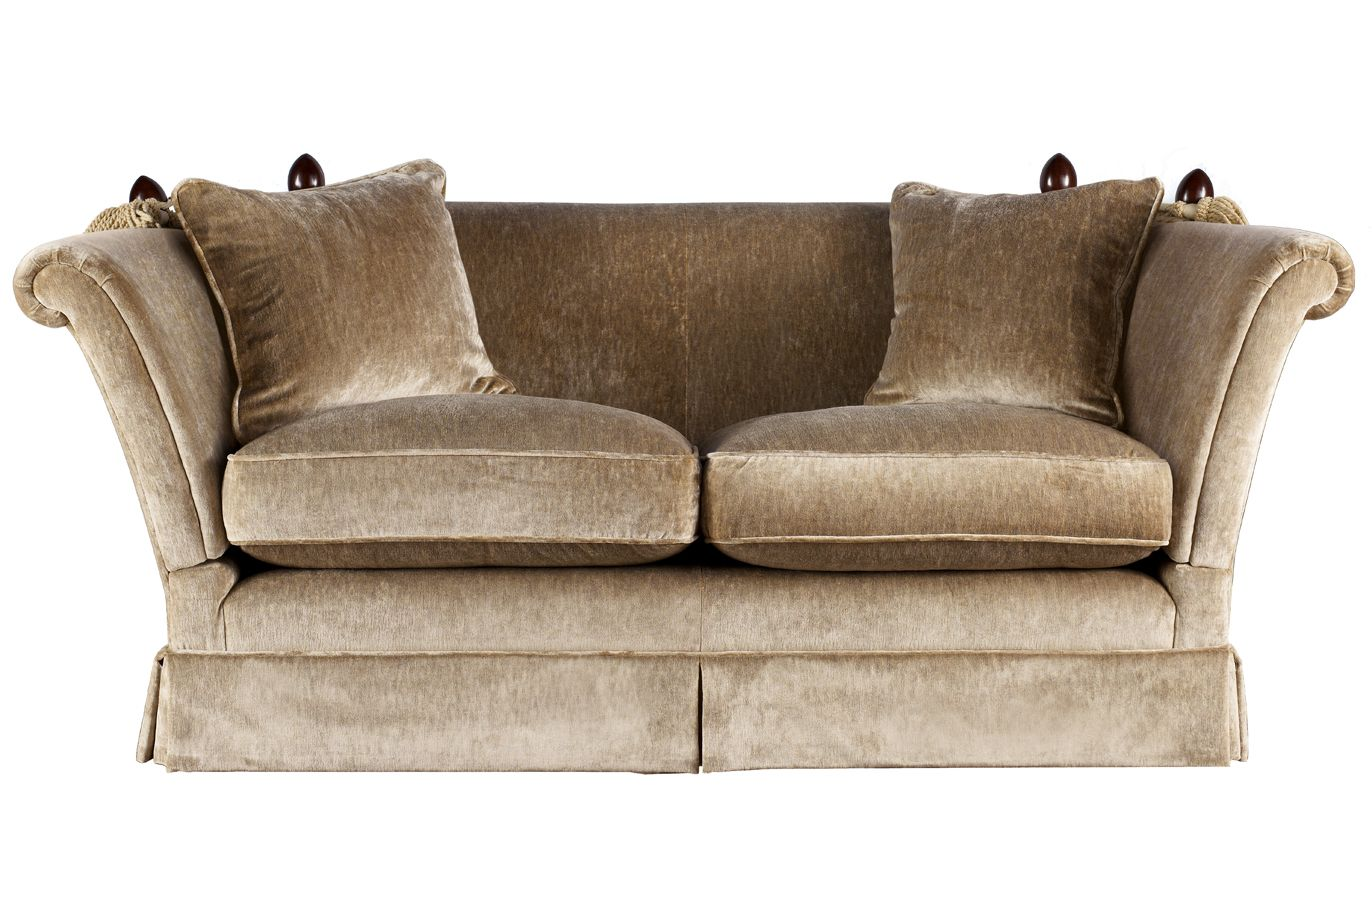 Two Couches | Langham Upholstered 2 Seater Sofa - Laura Ashley made ...